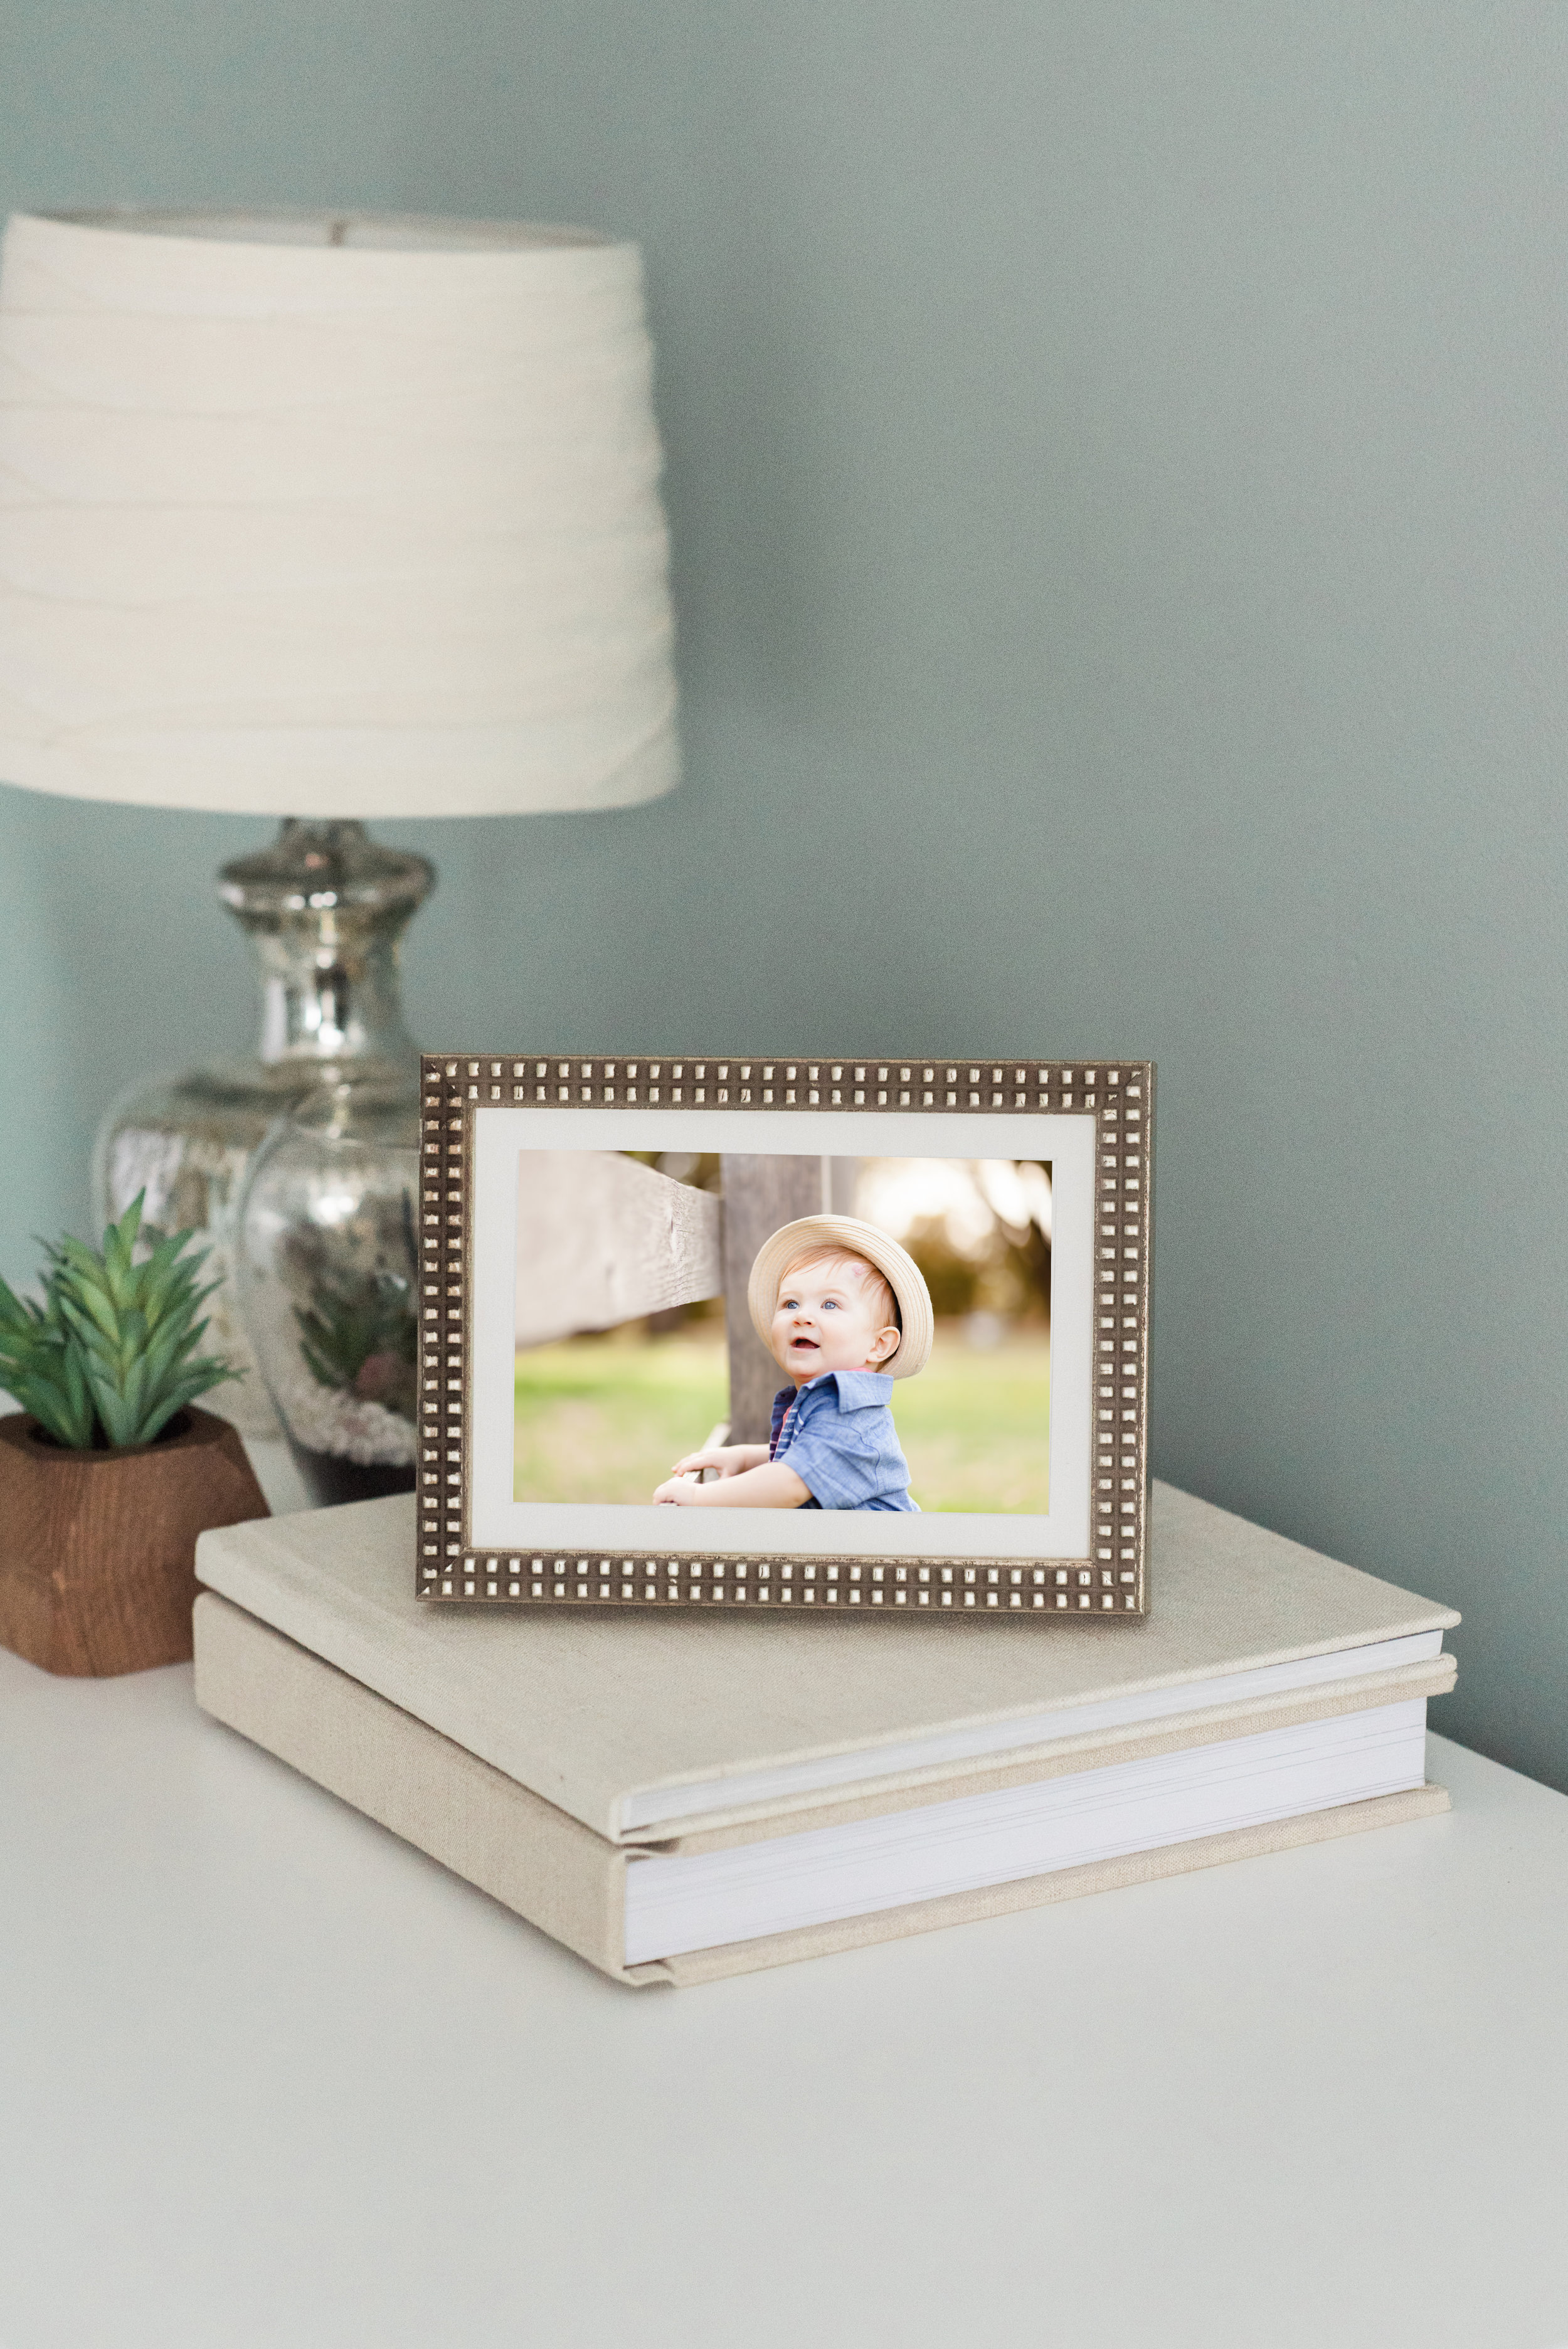 The Hawthorn Frame (picture above) Great for eclectic homes. Matches well with home colors of grey, white, soft neutral colors. Matches with many preexisting frames styles. The most popular frame!